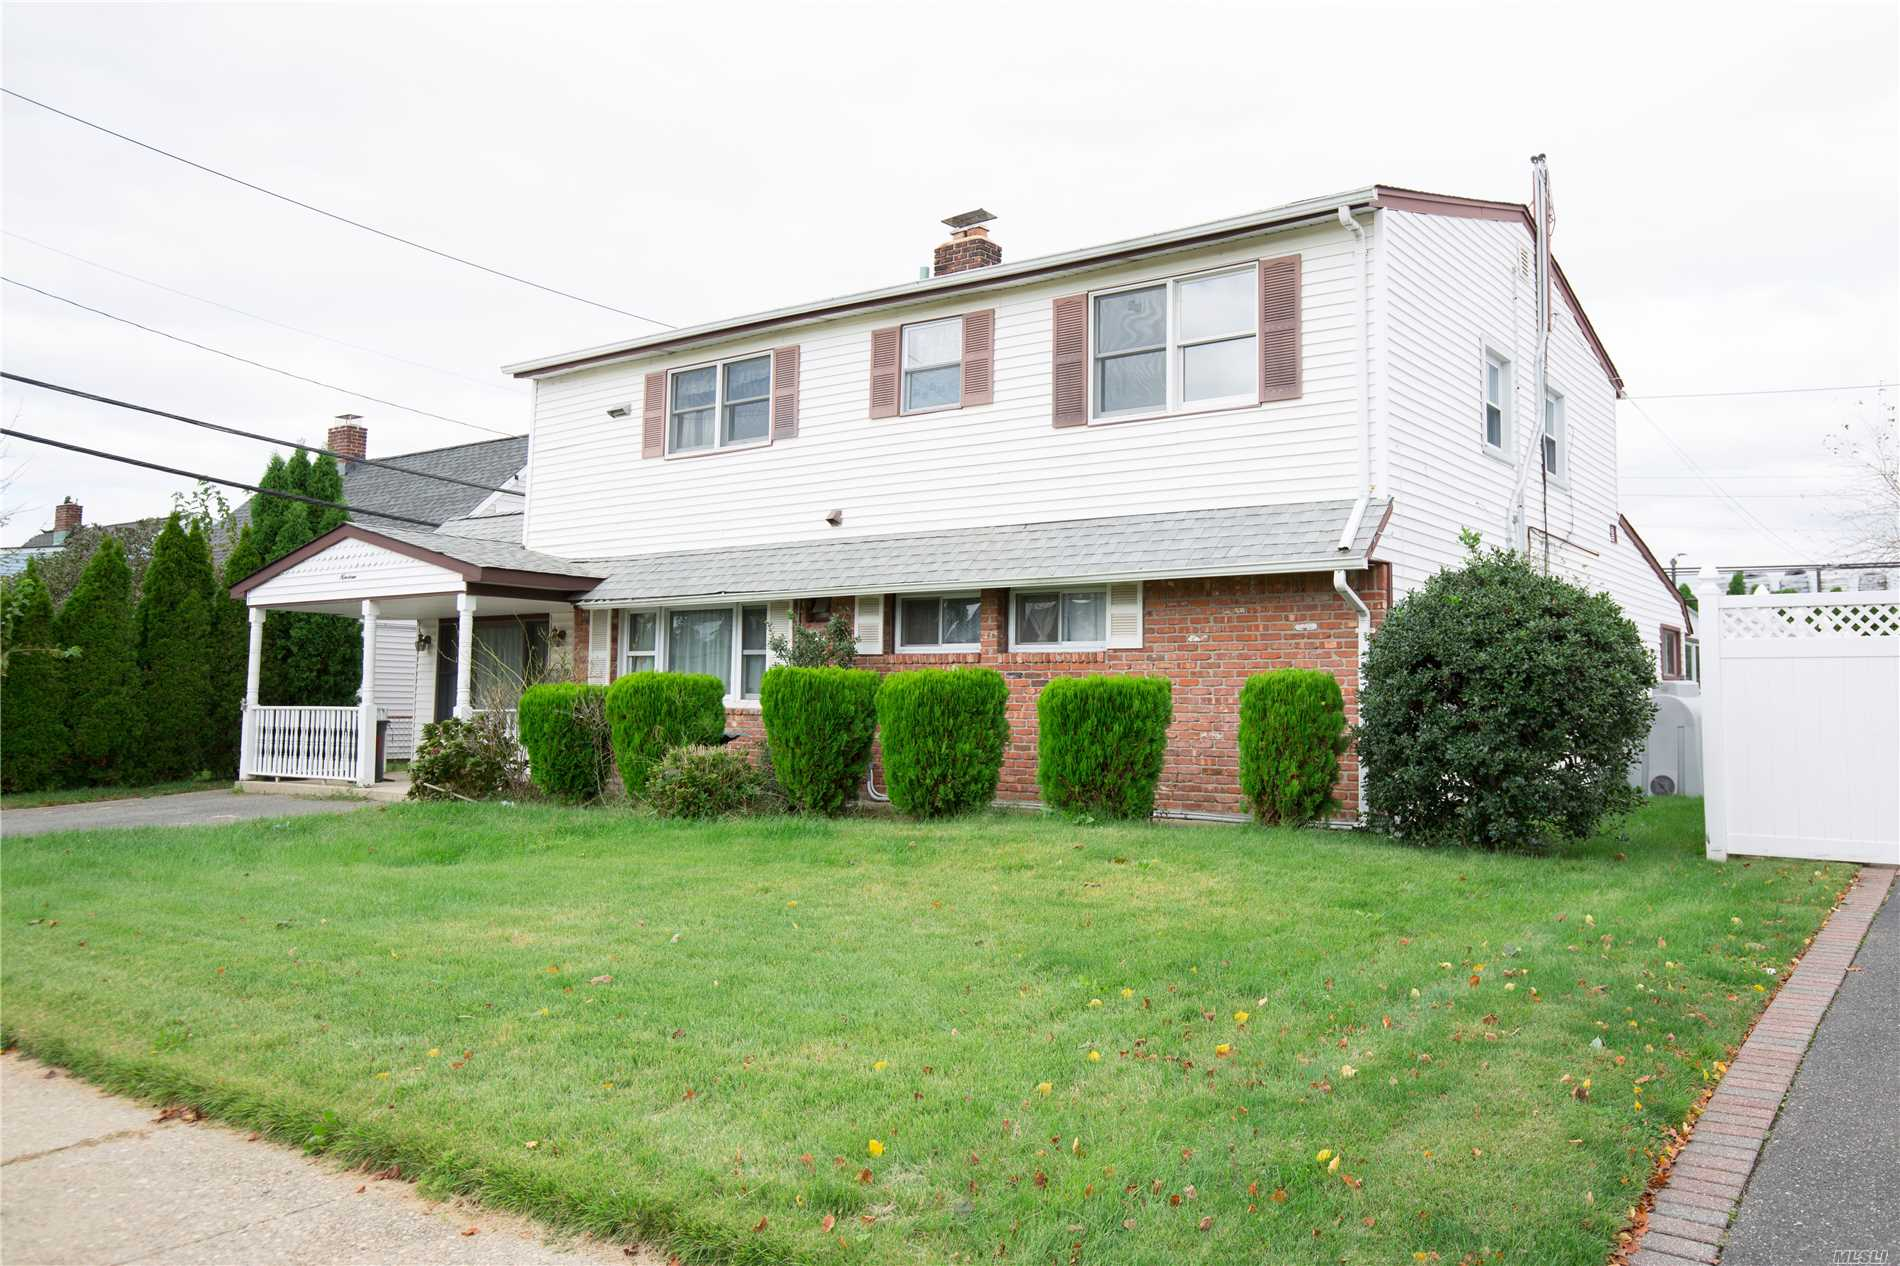 19 Amber Ln - Levittown, New York